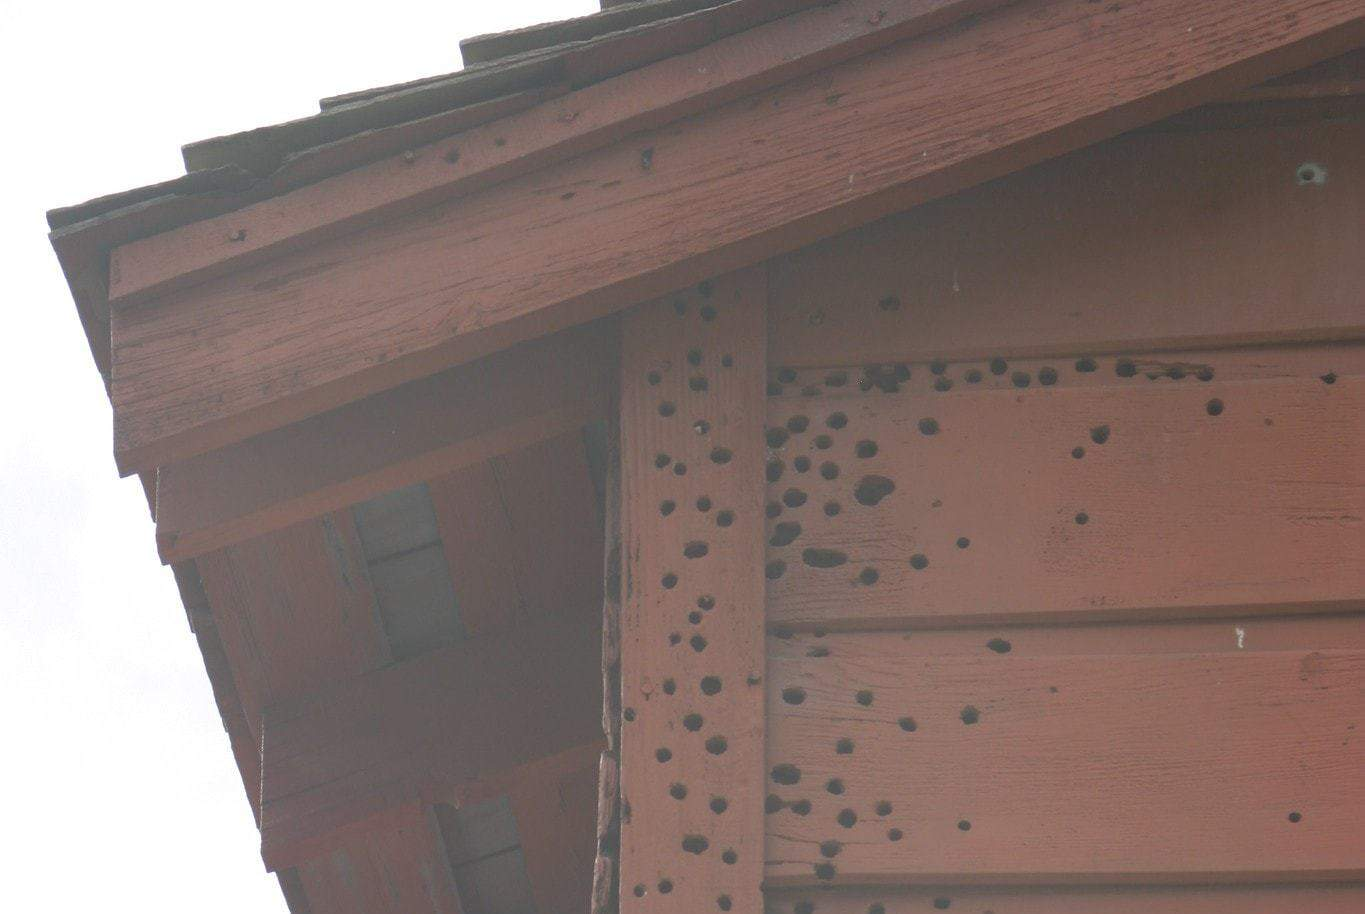 woodpecker-holes in a house wall